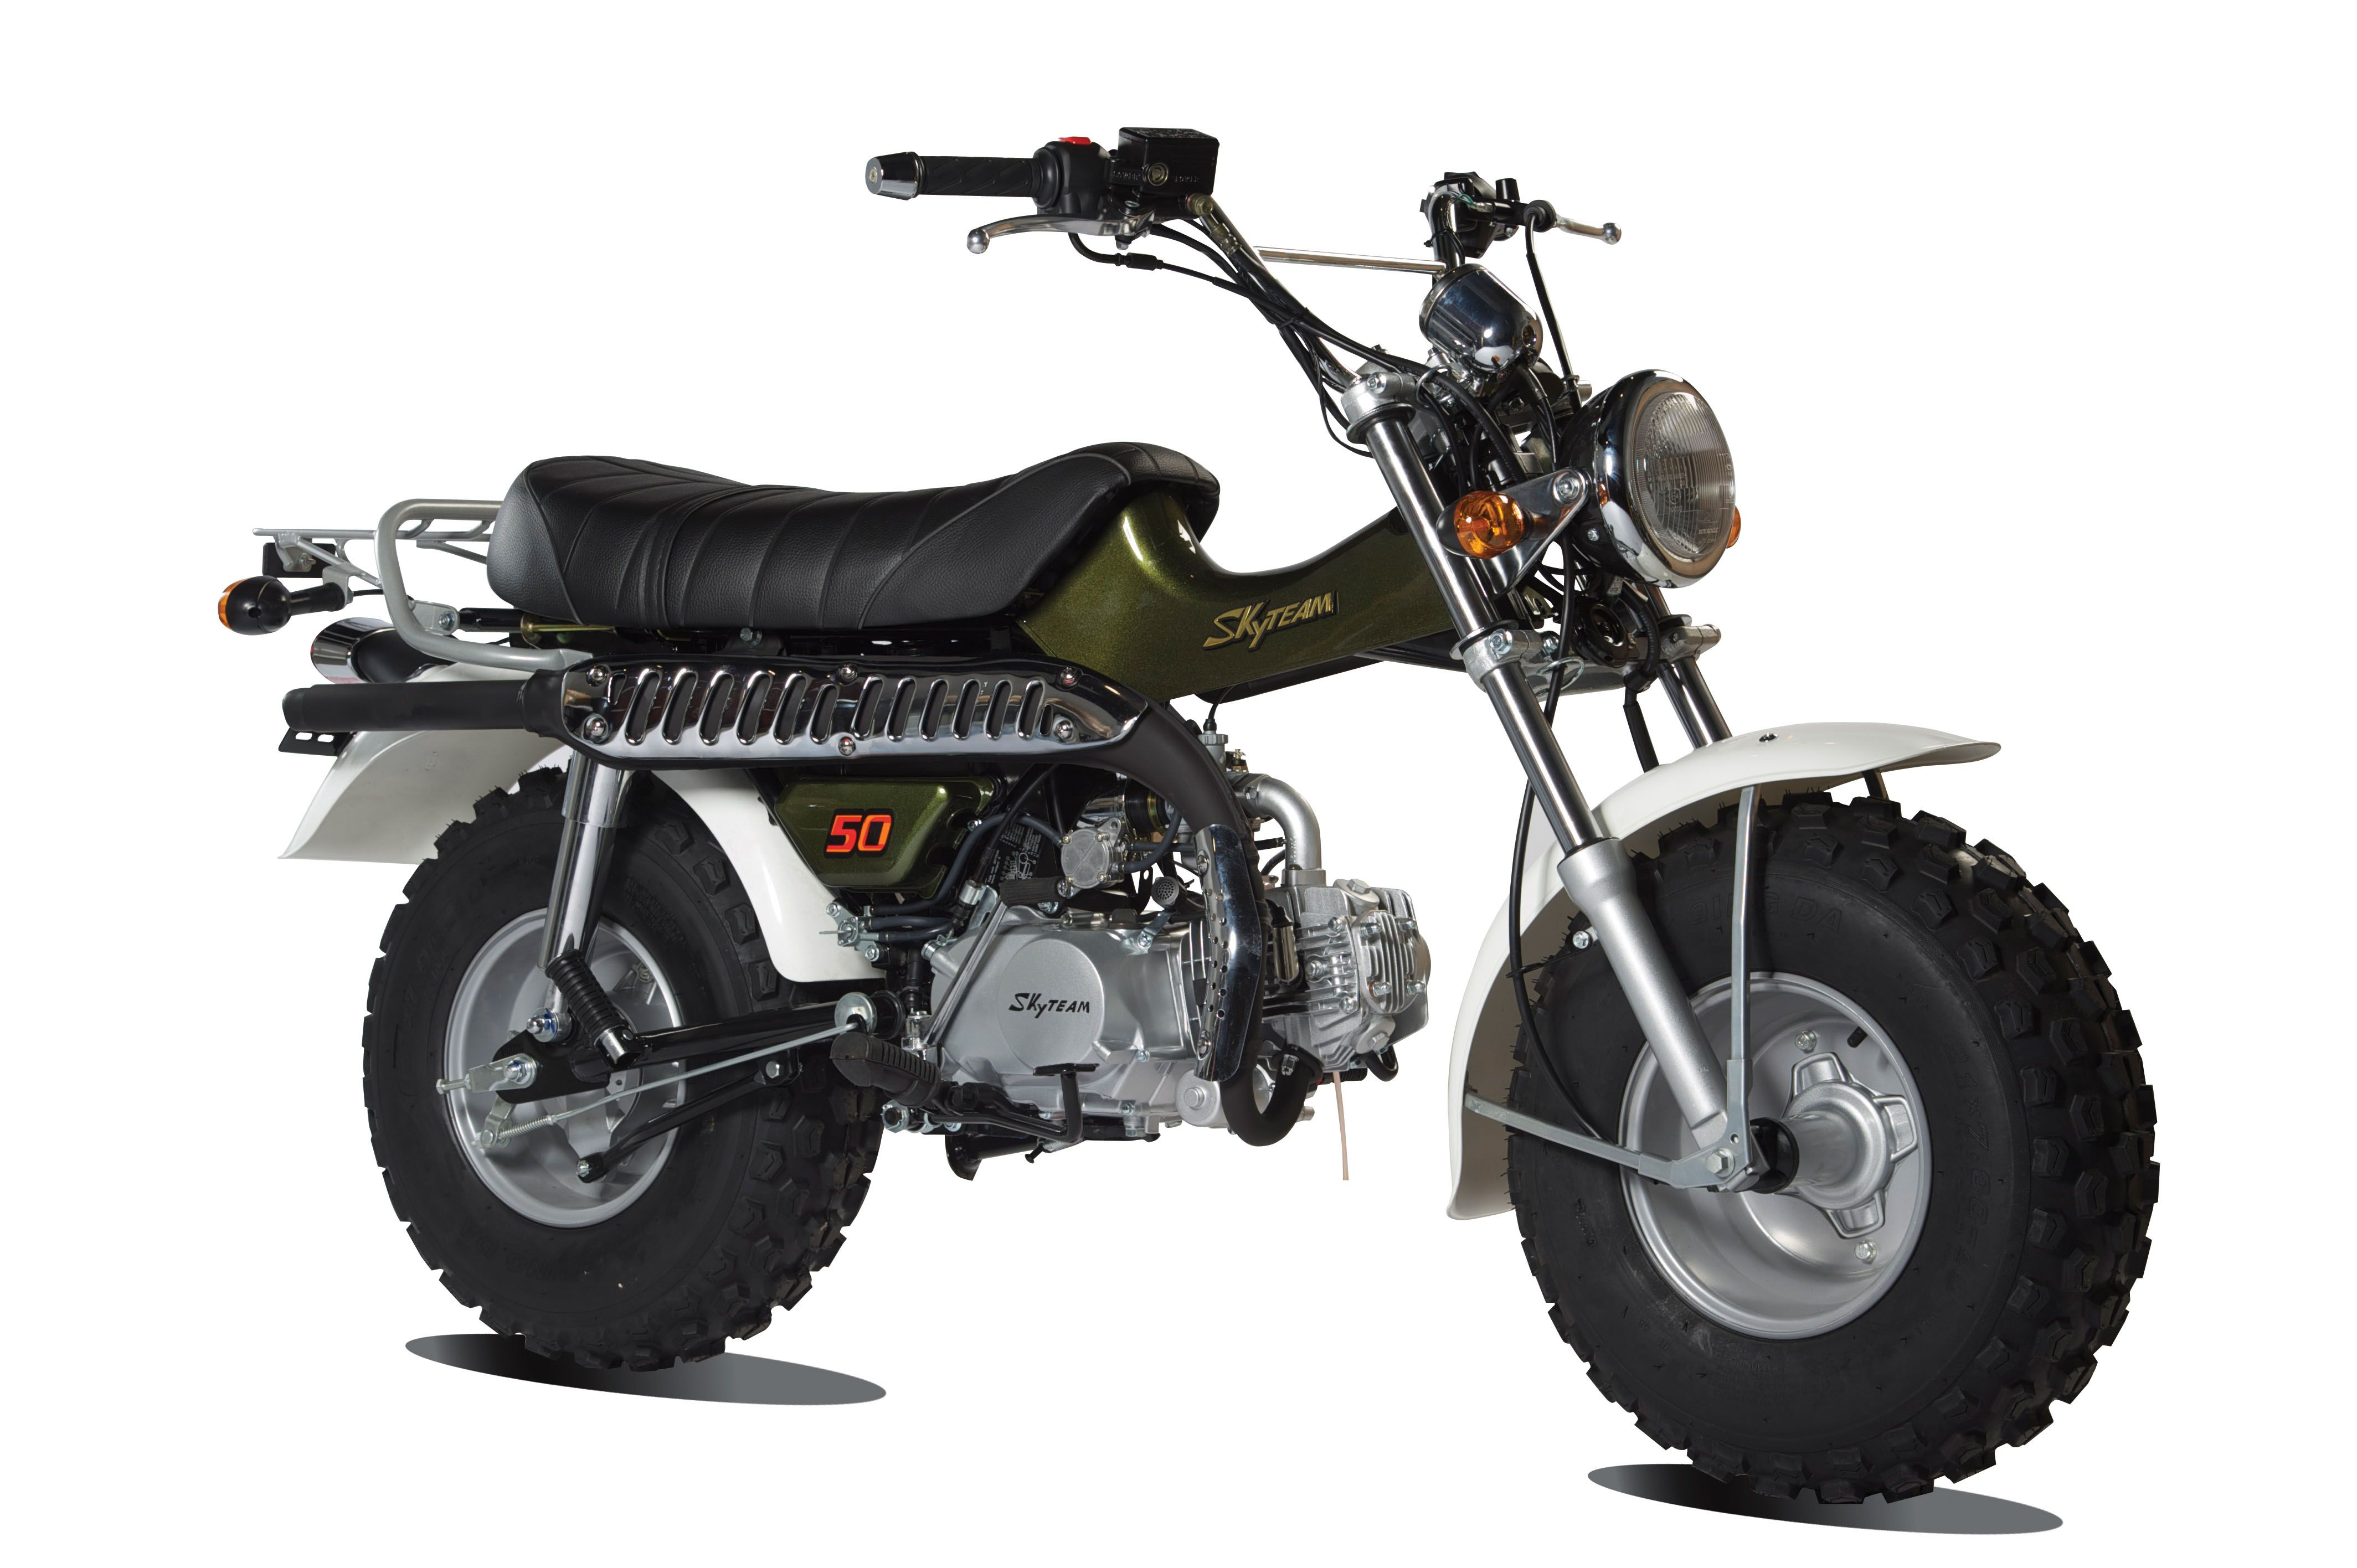 New Skyteam T-REX 50 Motorcycle For Sale in Rugby, 6130192